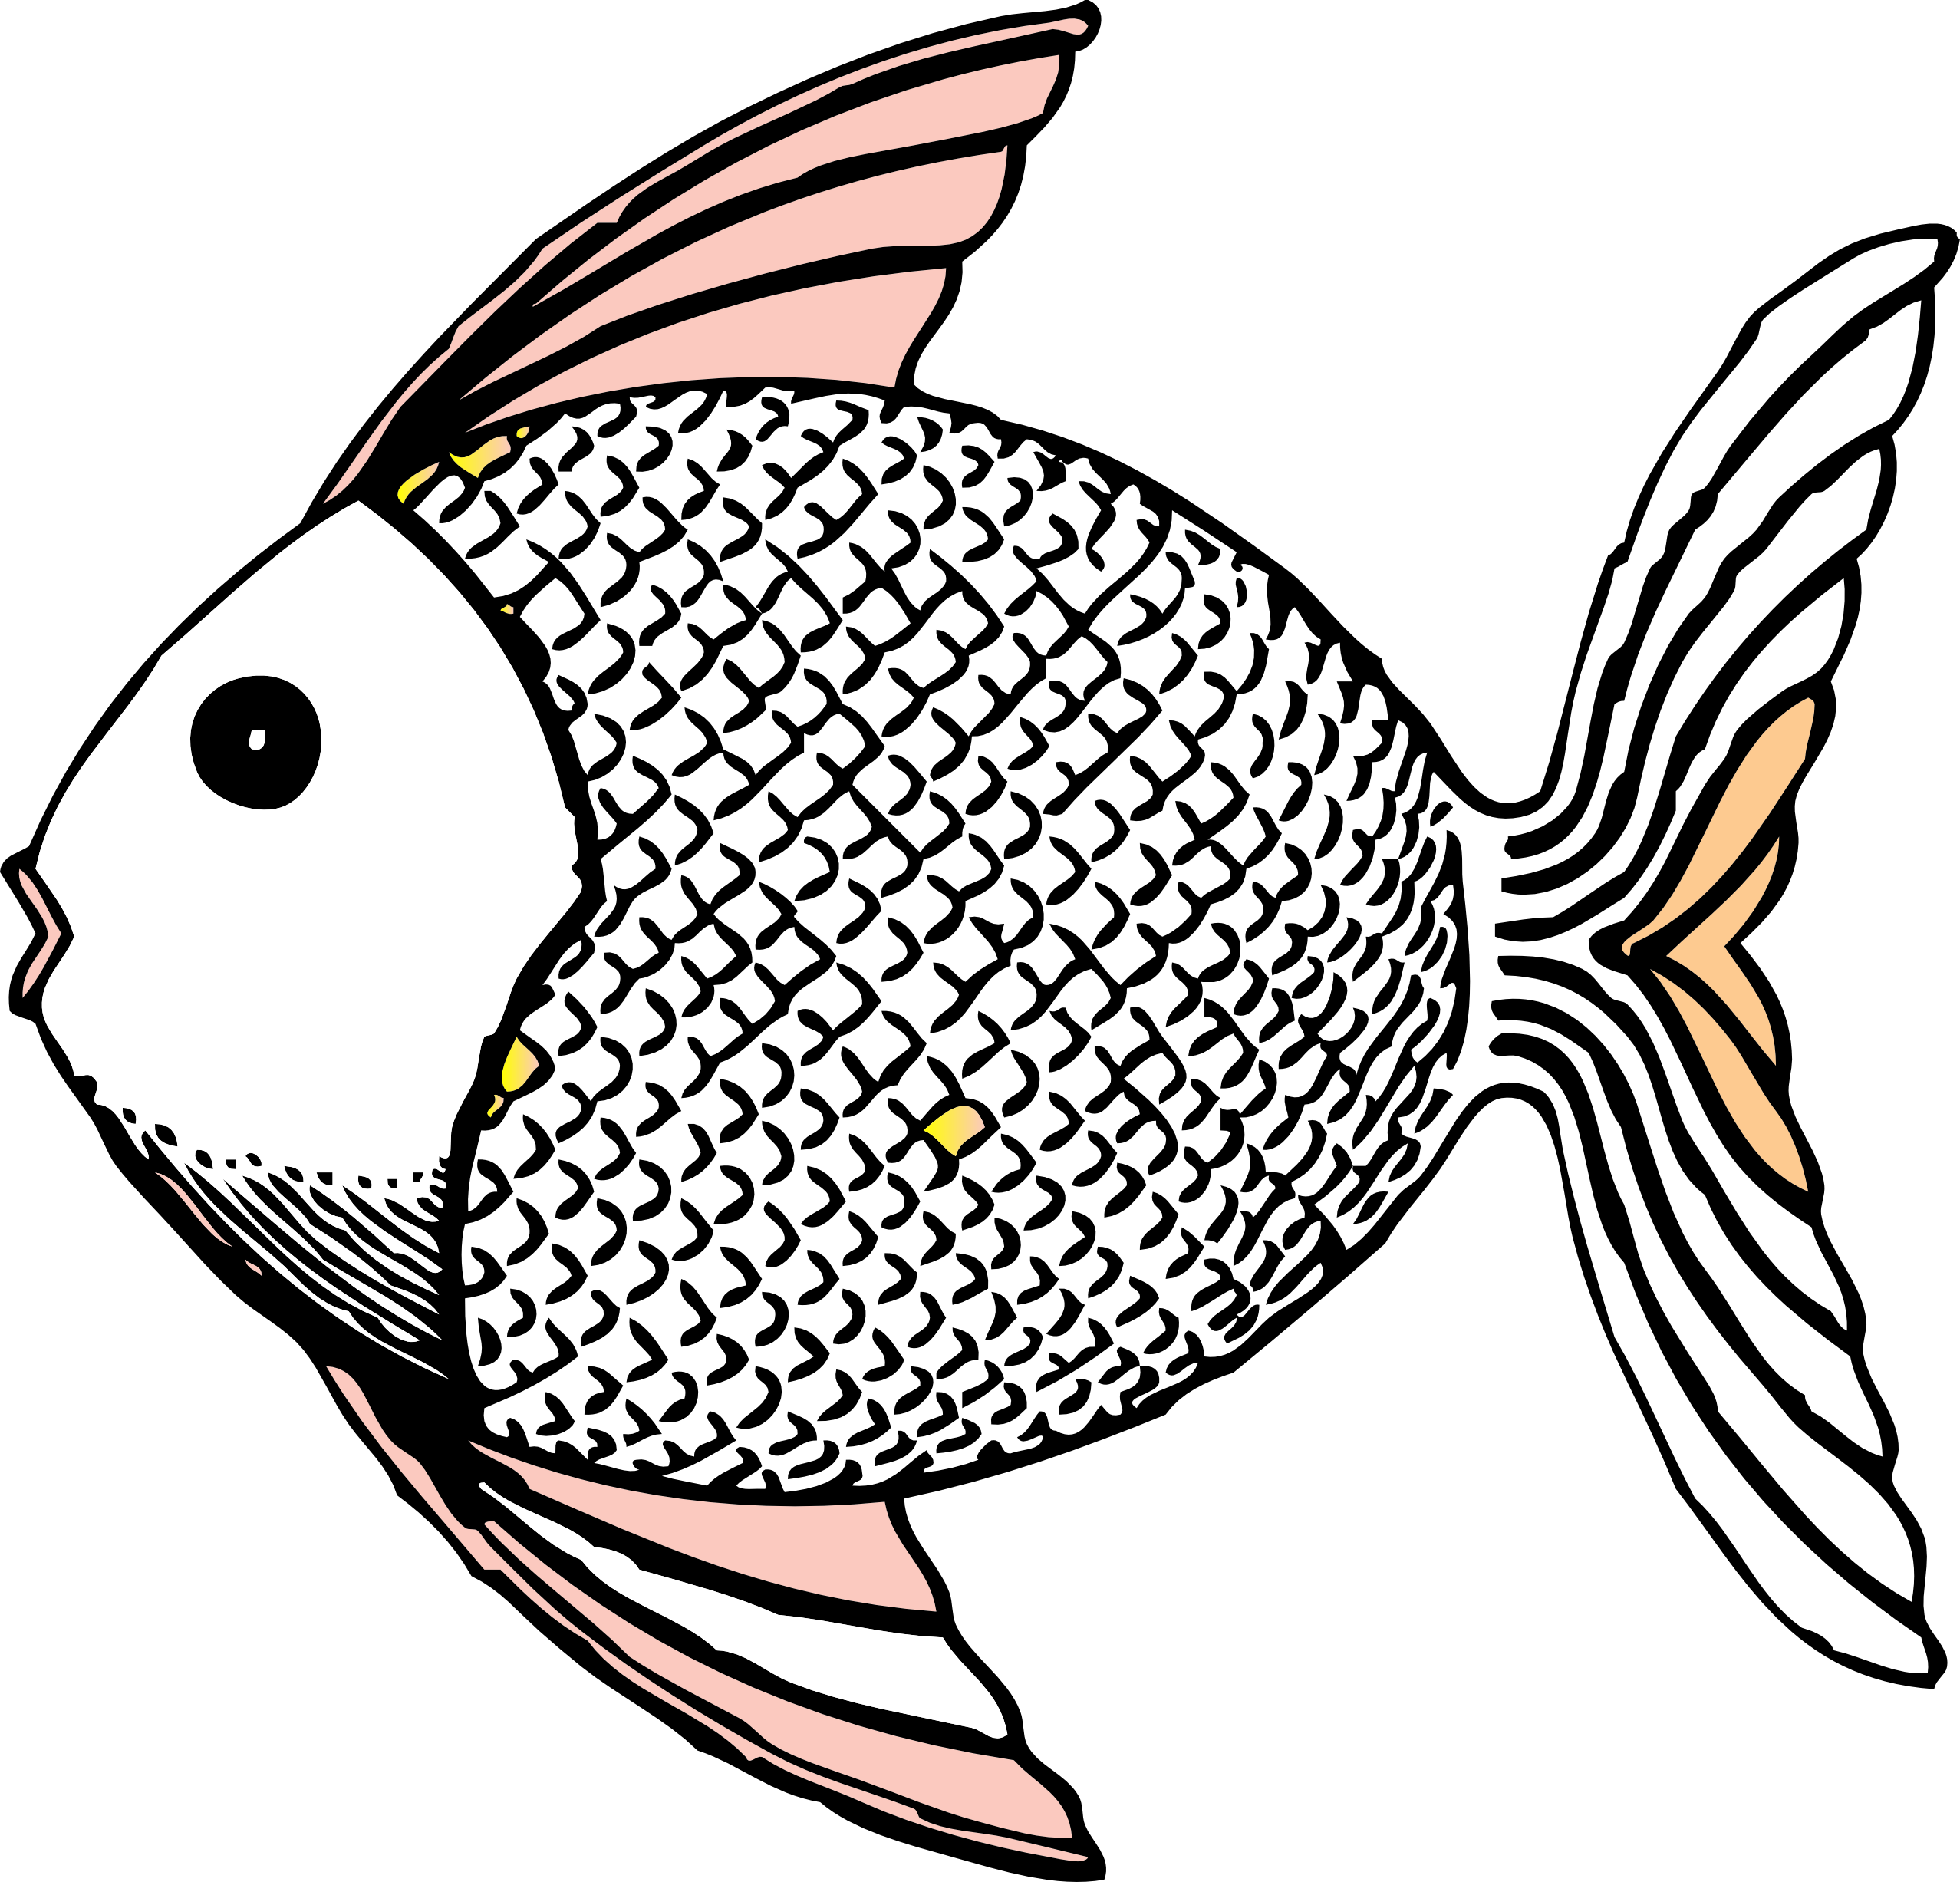 Fresh fish clipart image transparent Fish Clip Art Black and White | tropical fish black white line art ... image transparent